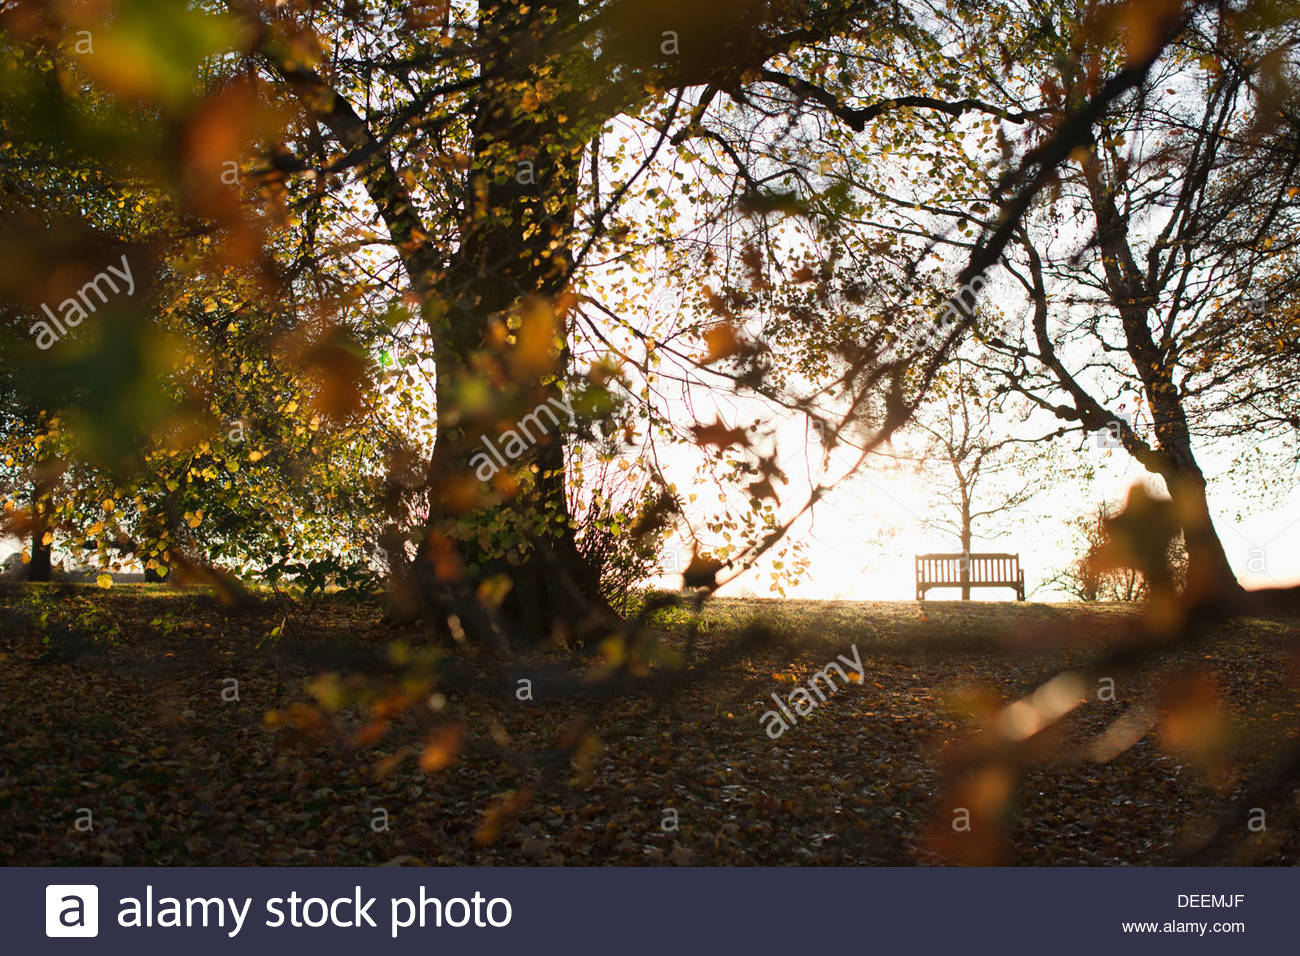 Park bench and autumn trees - Stock Image